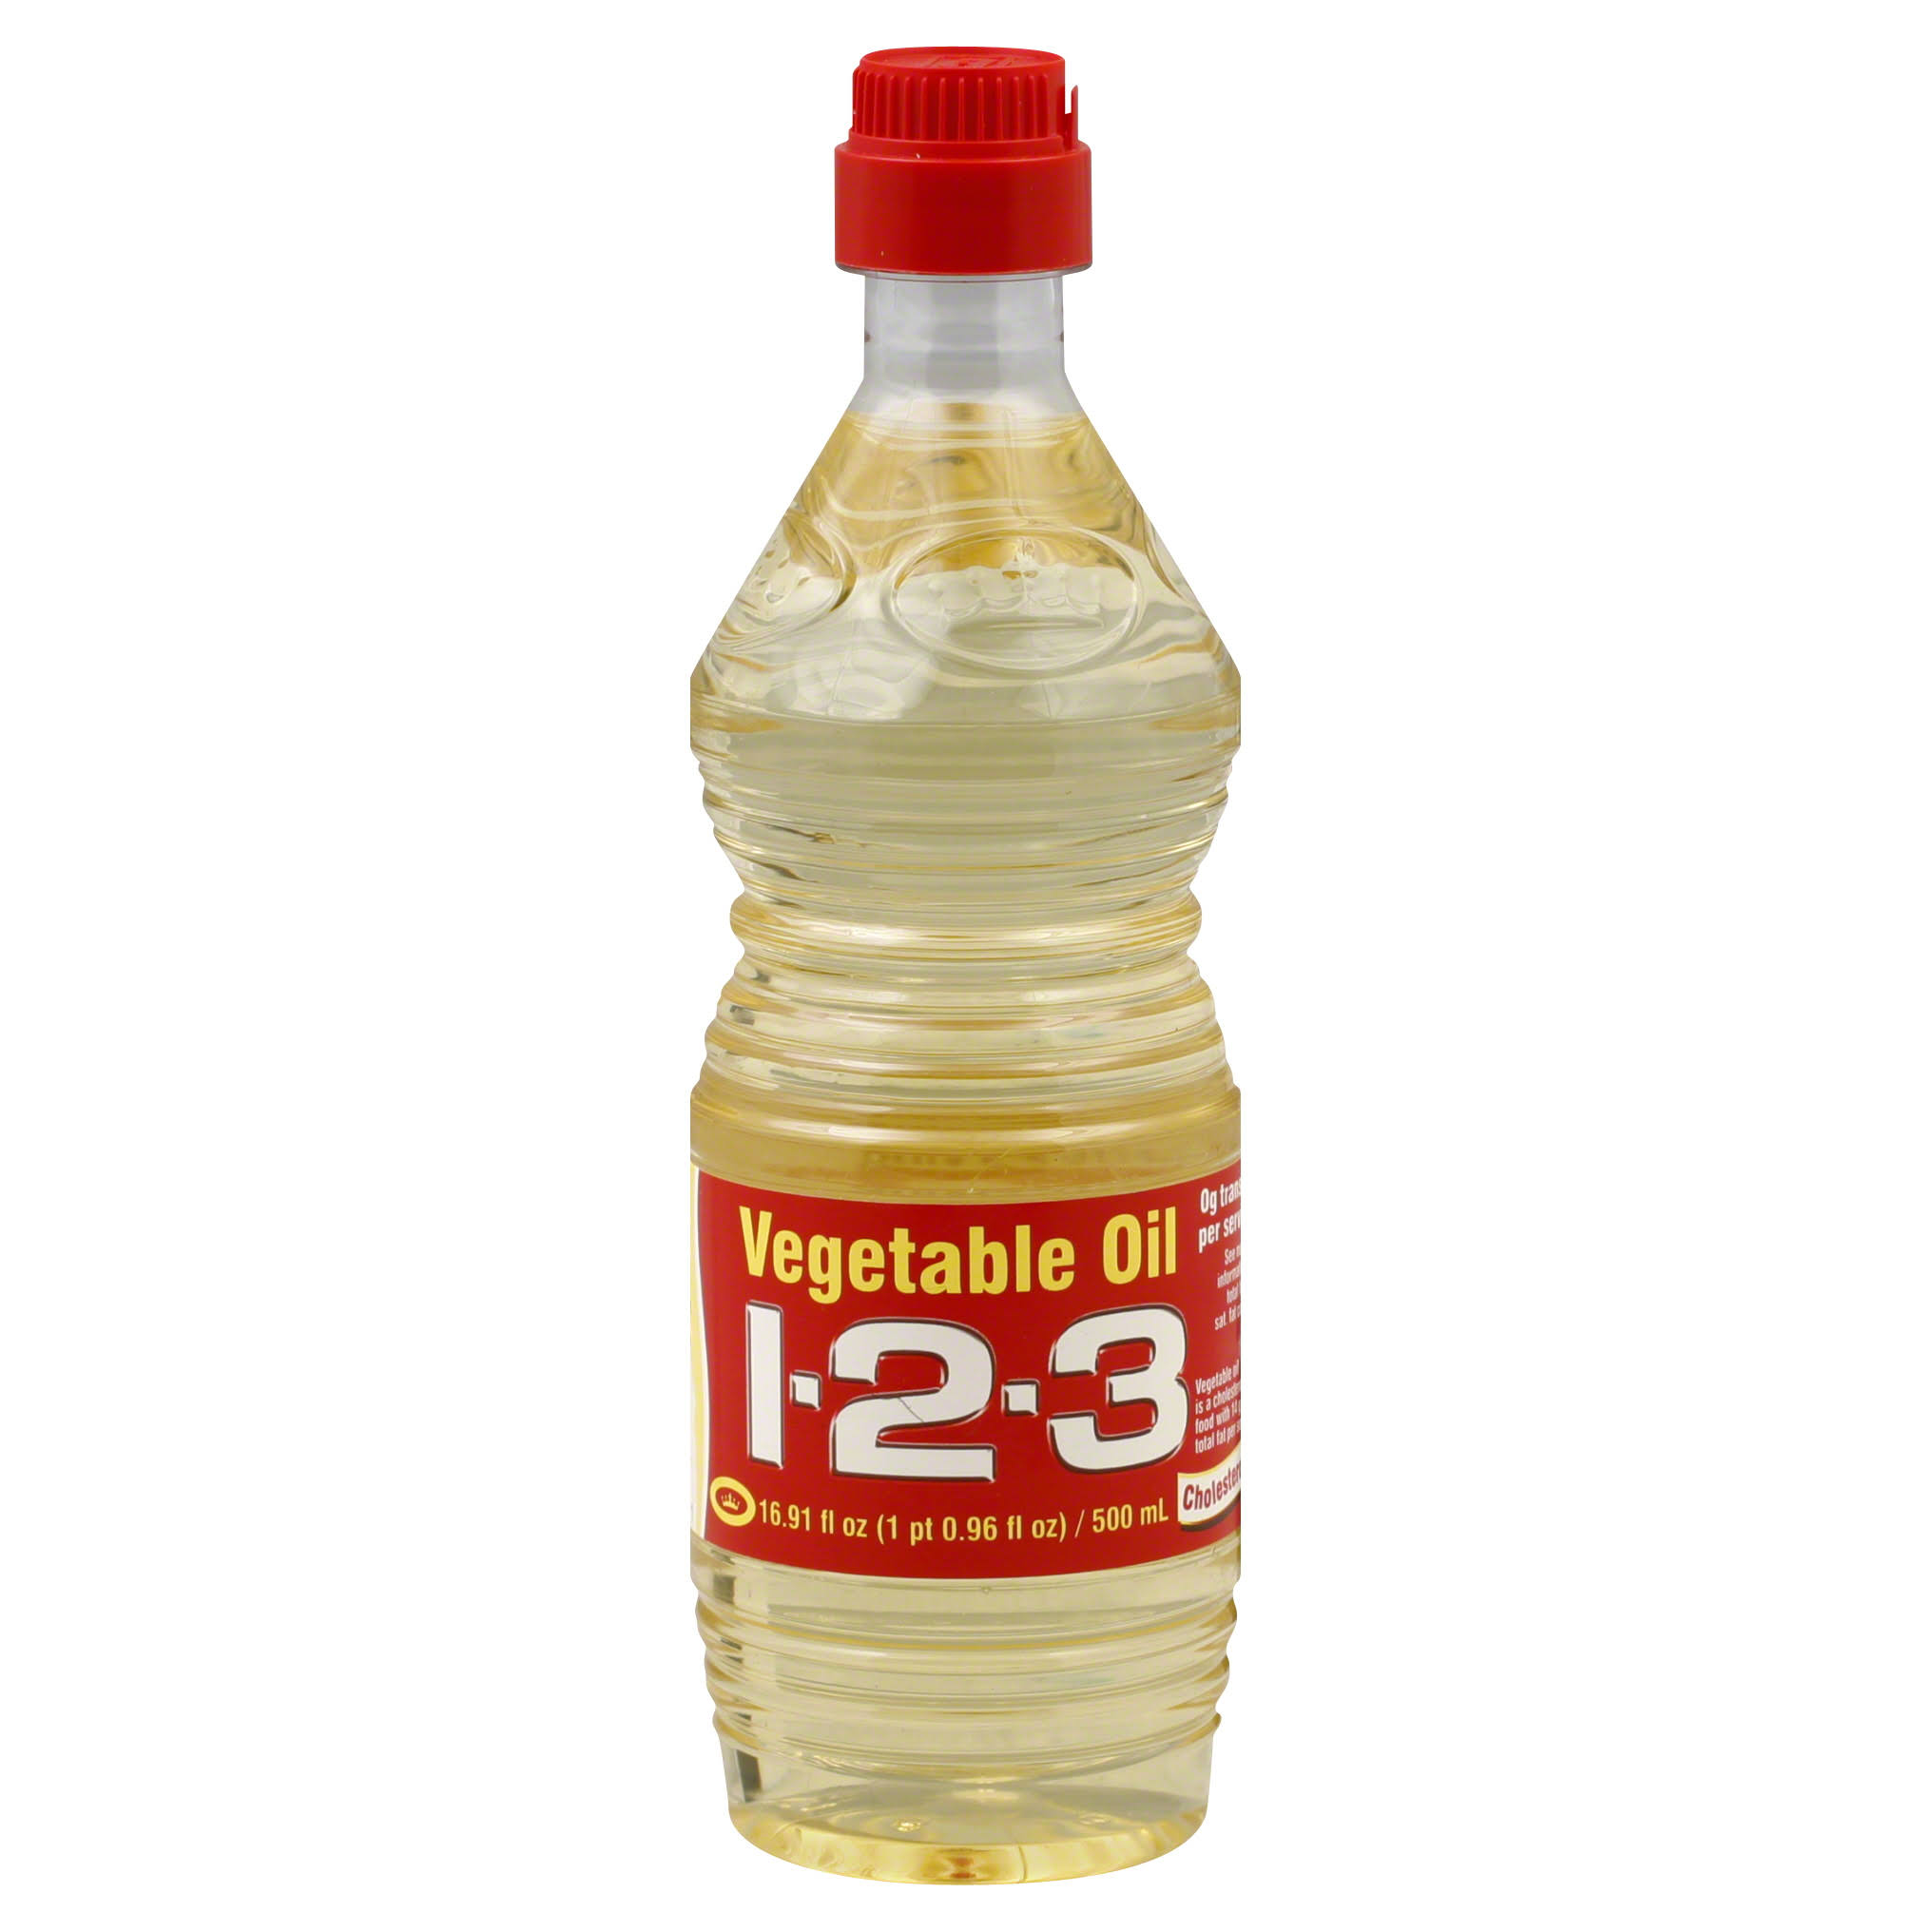 1-2-3 Vegetable Oil - 500ml